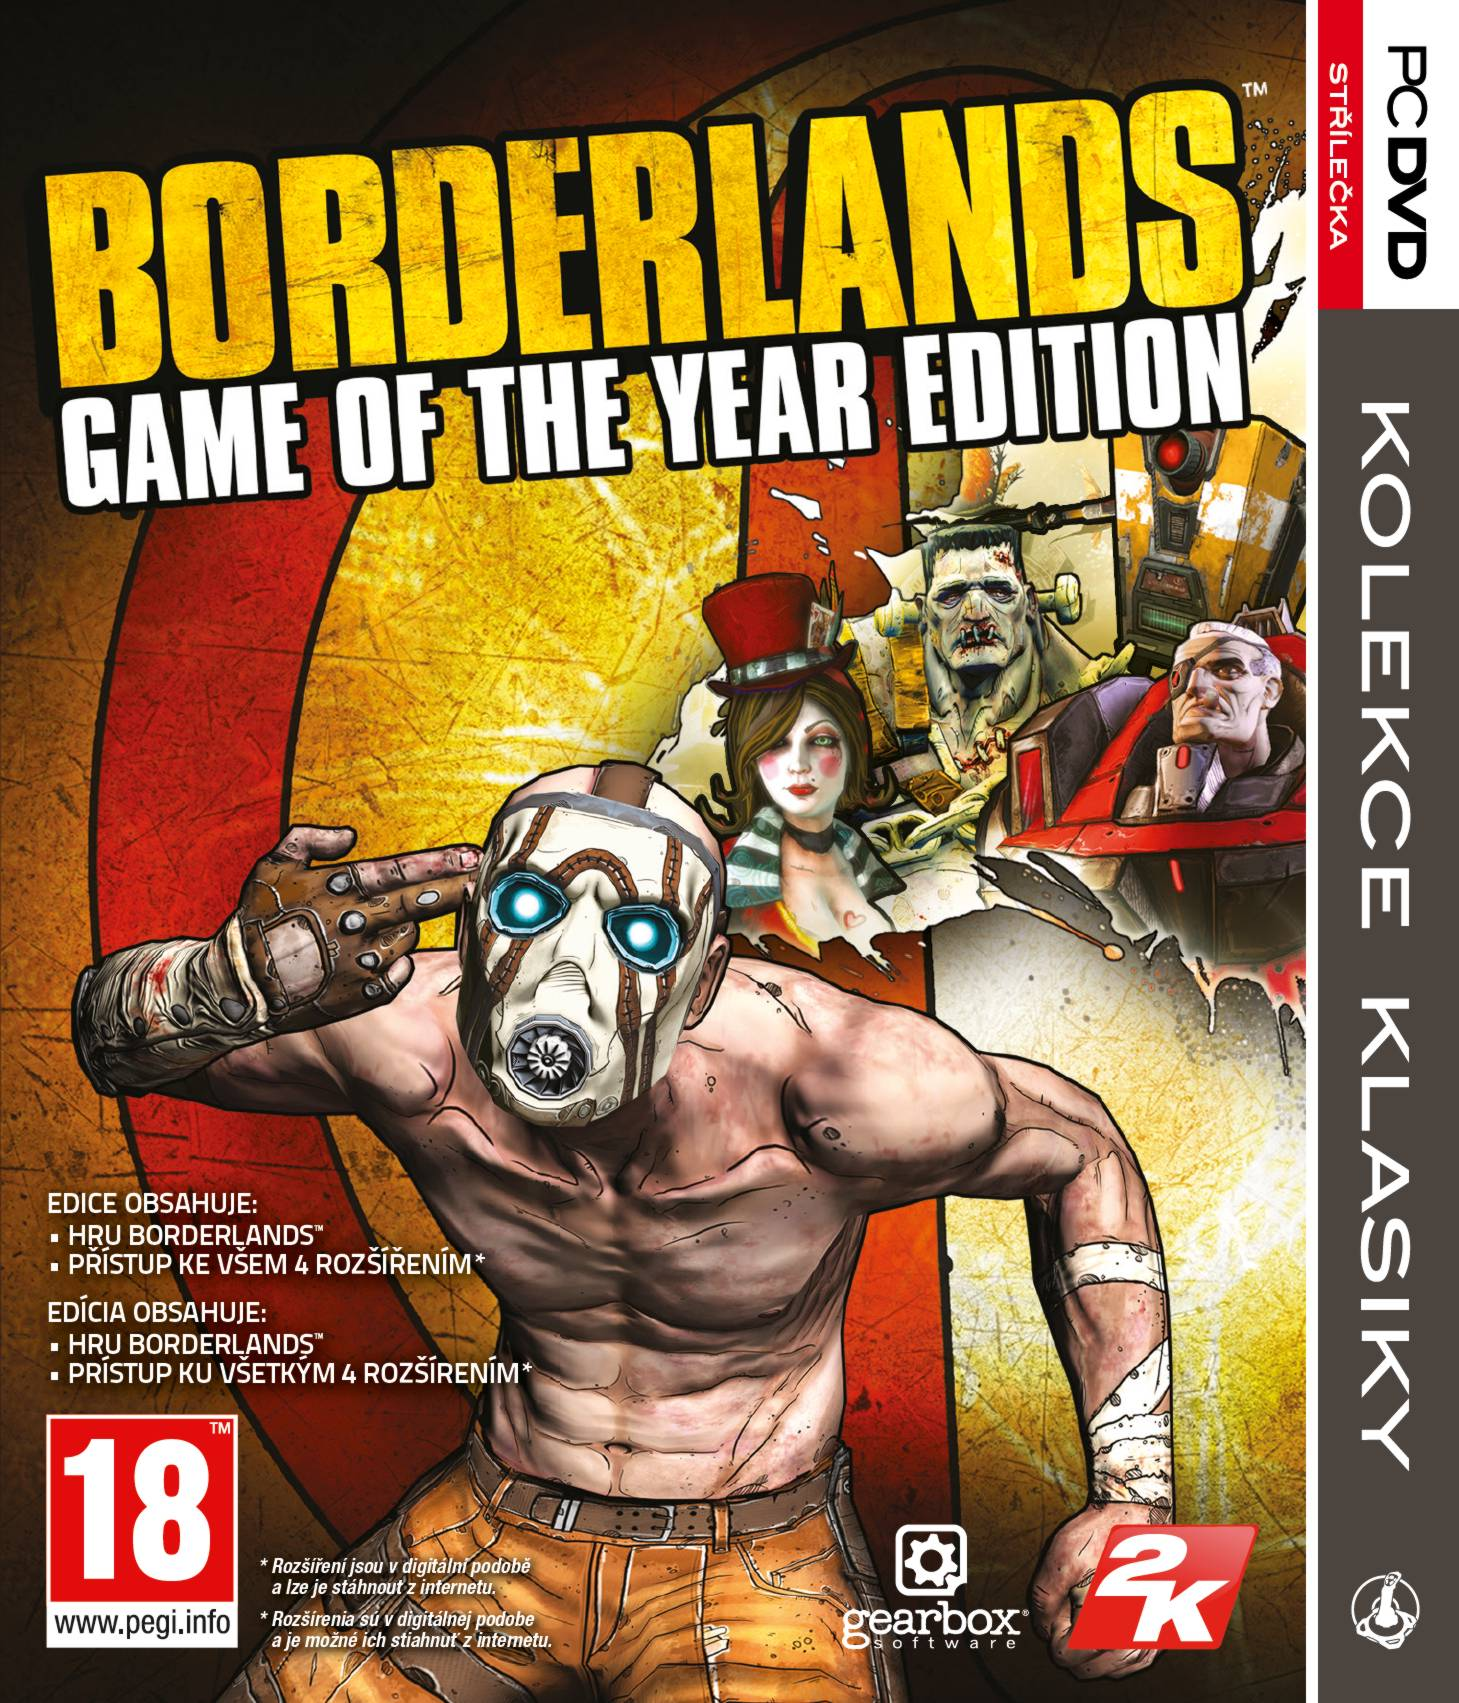 BORDERLANDS: GAME OF THE YEAR EDITION - PC